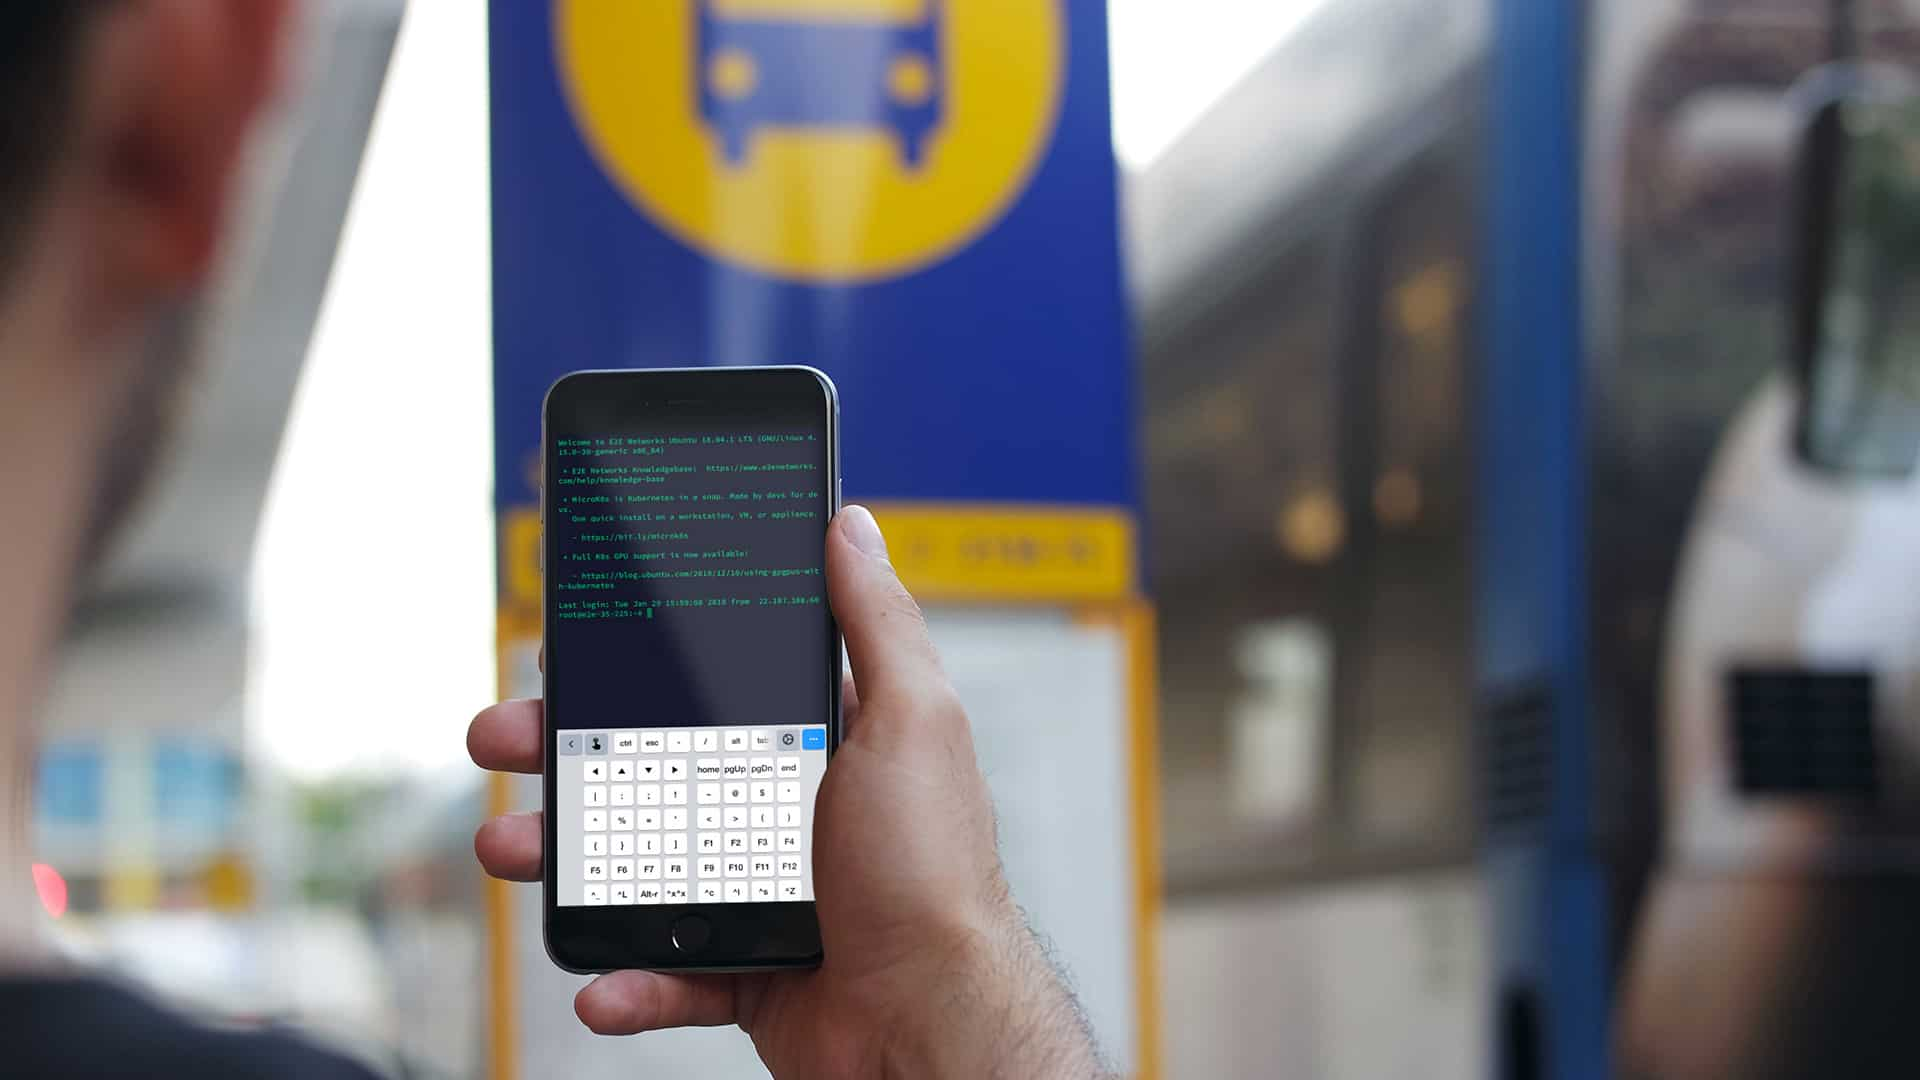 5 Best Ssh Terminal Apps For Iphone Manage Your Cloud Project On The Go Noupe